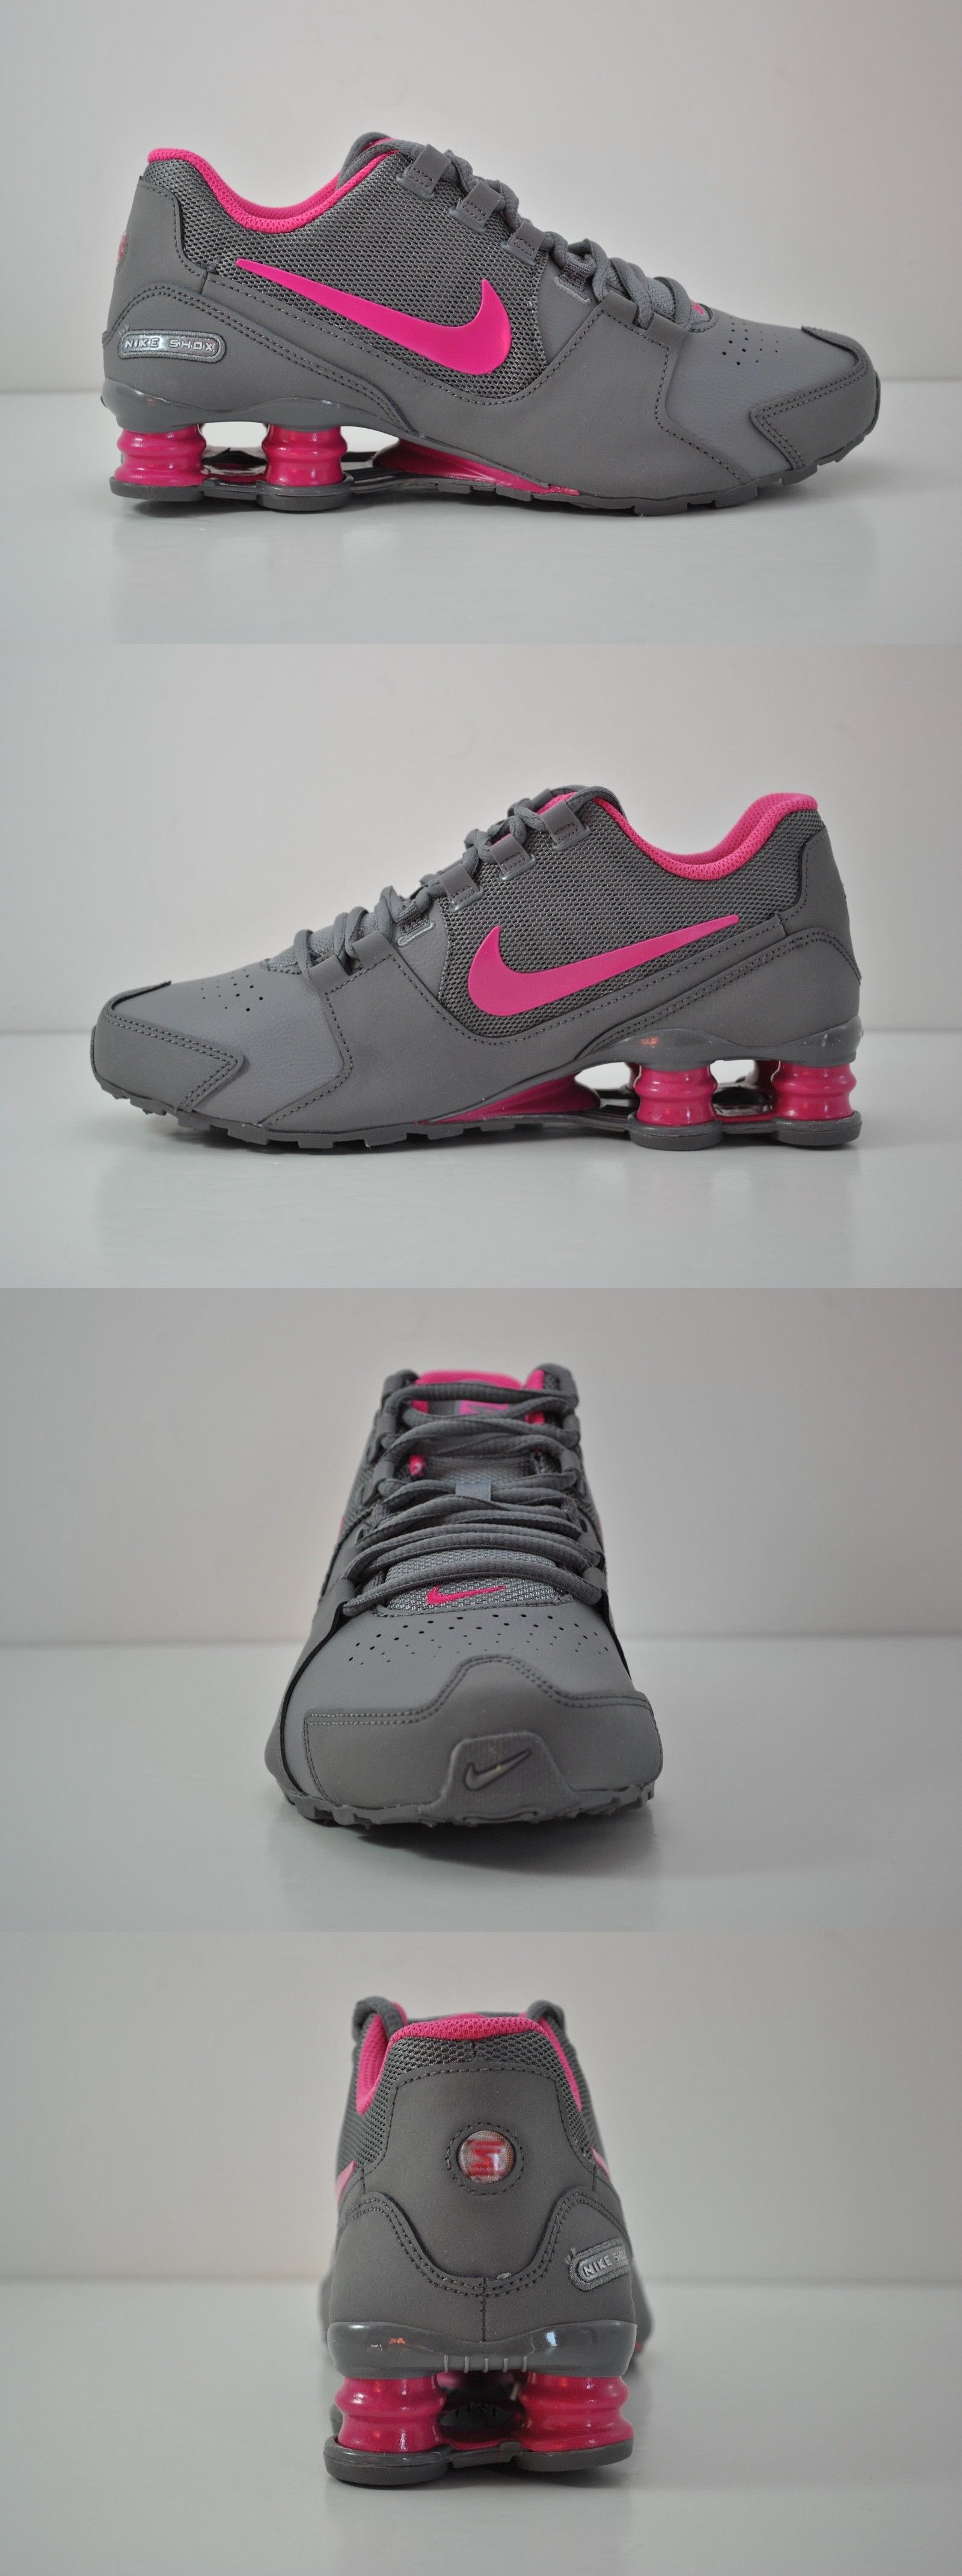 Unisex Shoes 155202: Youth Nike Shox Avenue Gs Running Shoes Size 6Y Grey  Hot Pink